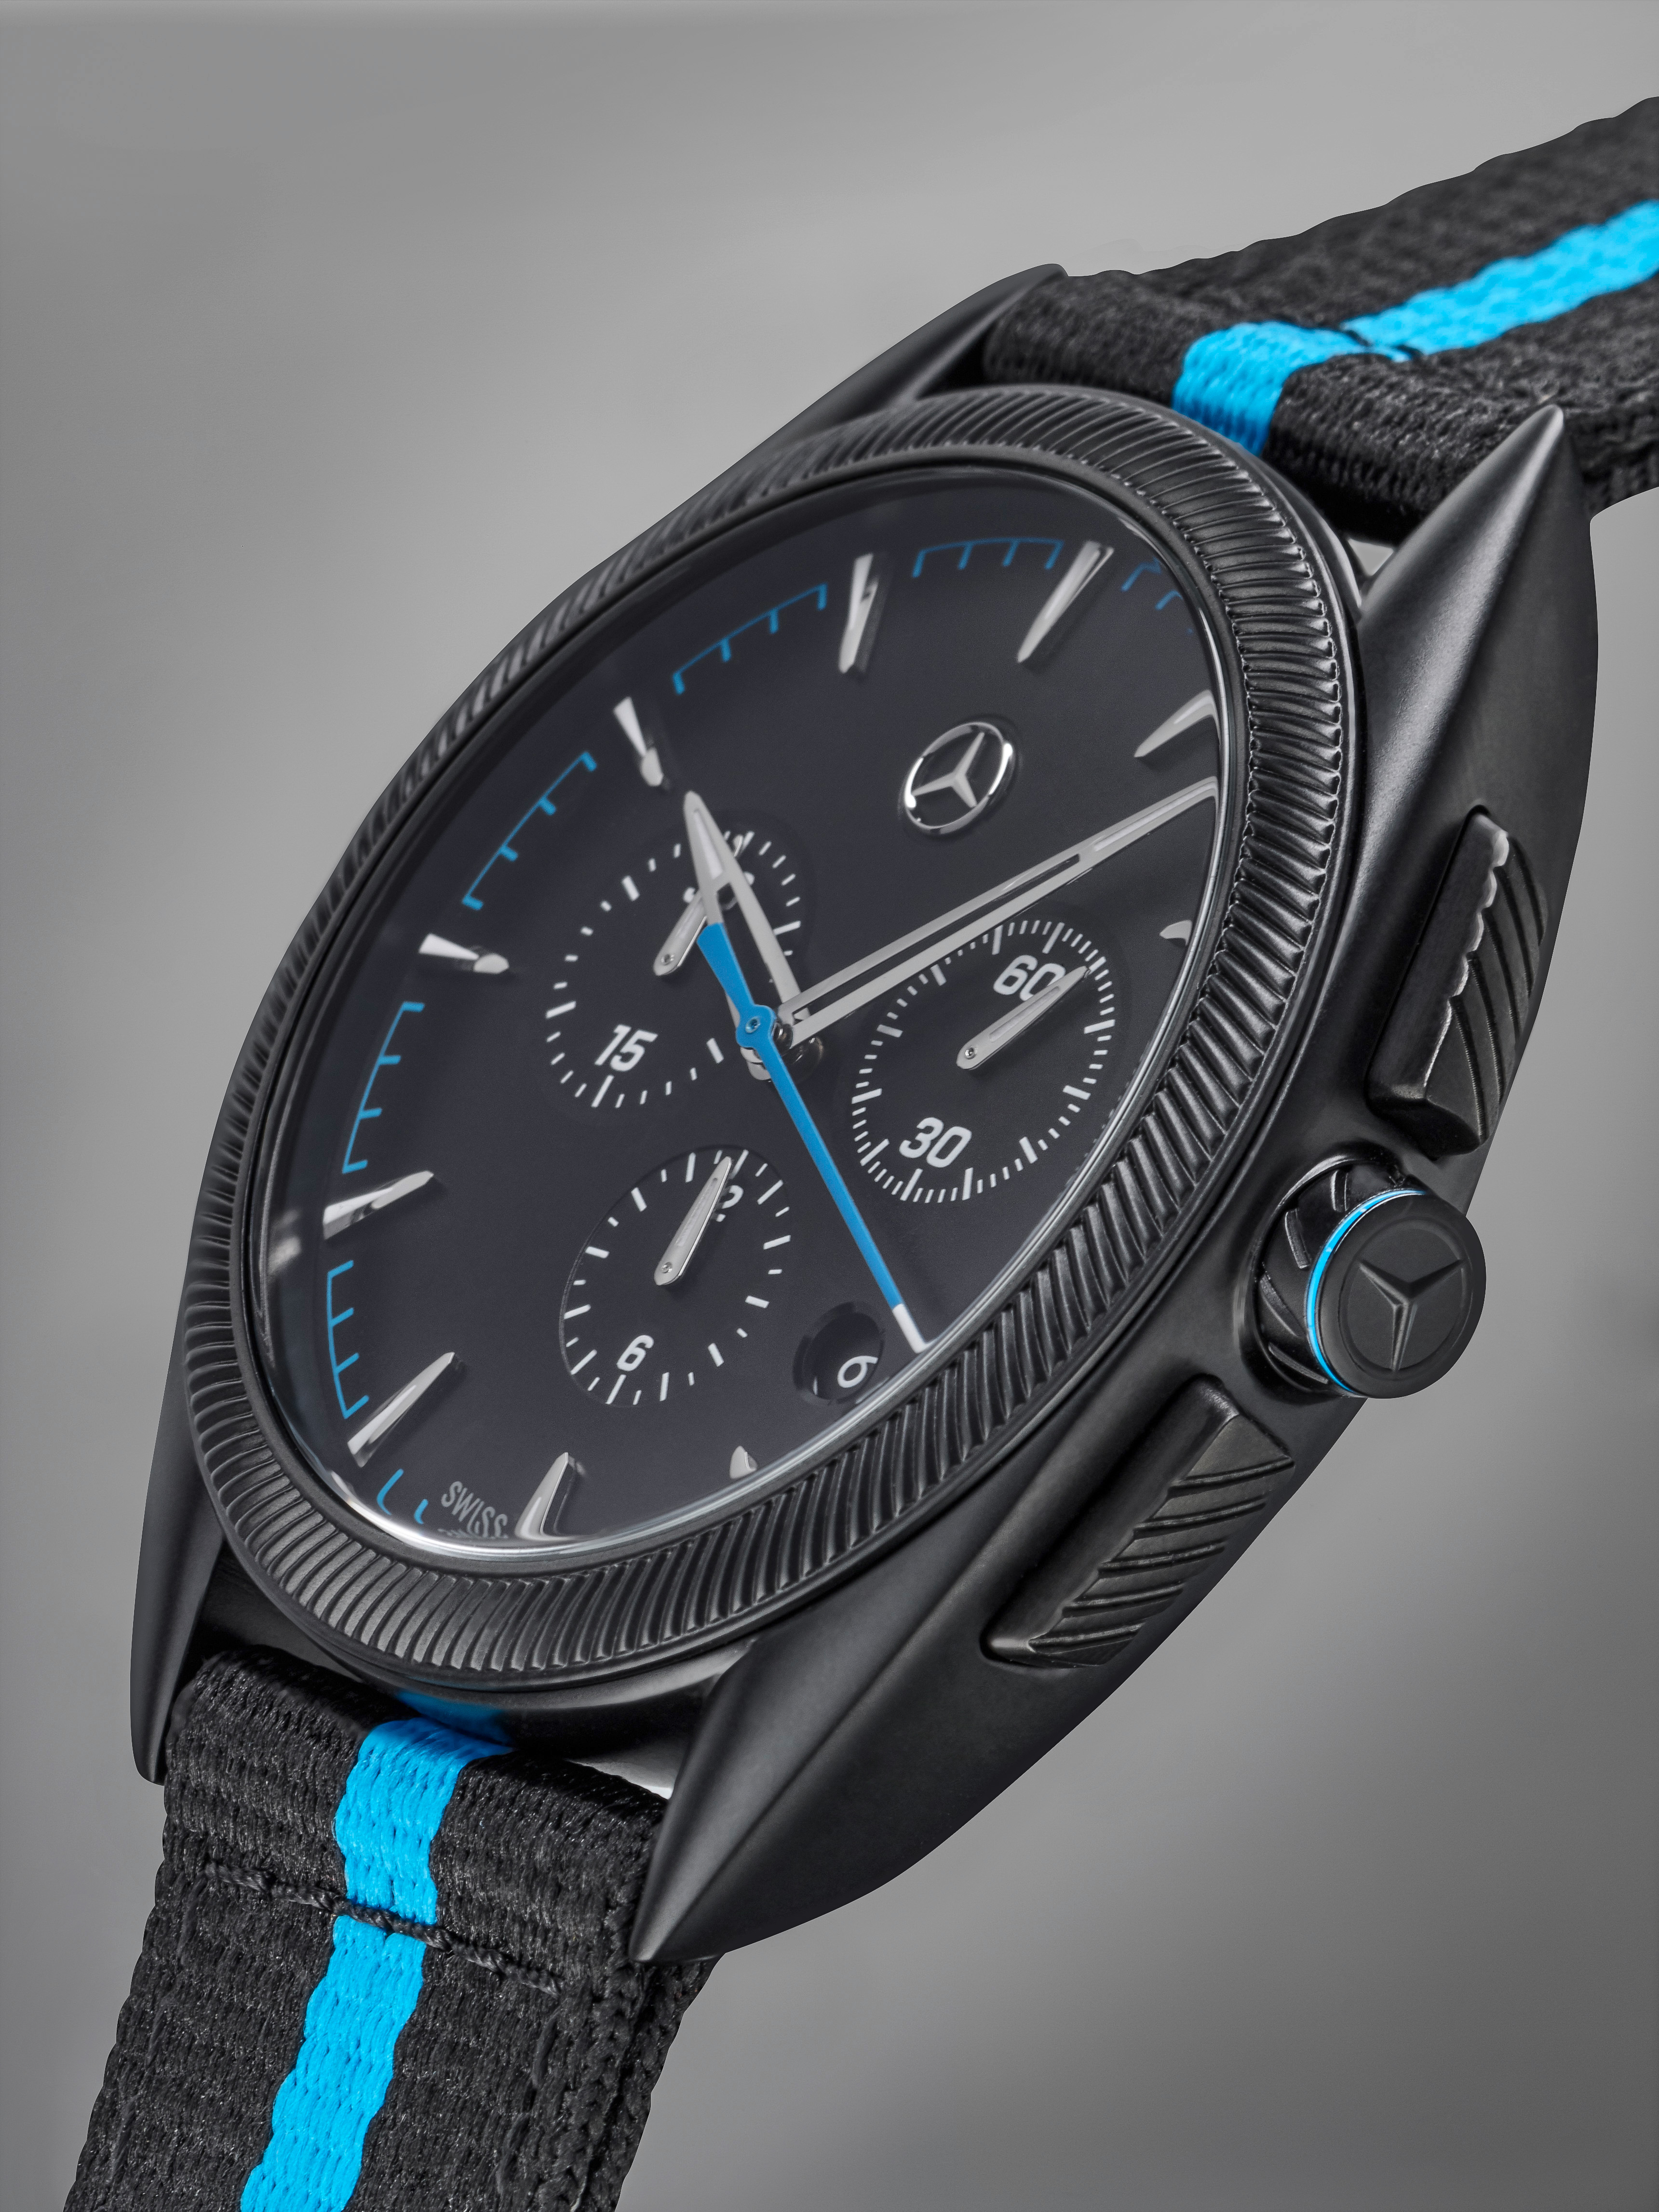 Mercedes Benz Unveils New Watches For Men And Women